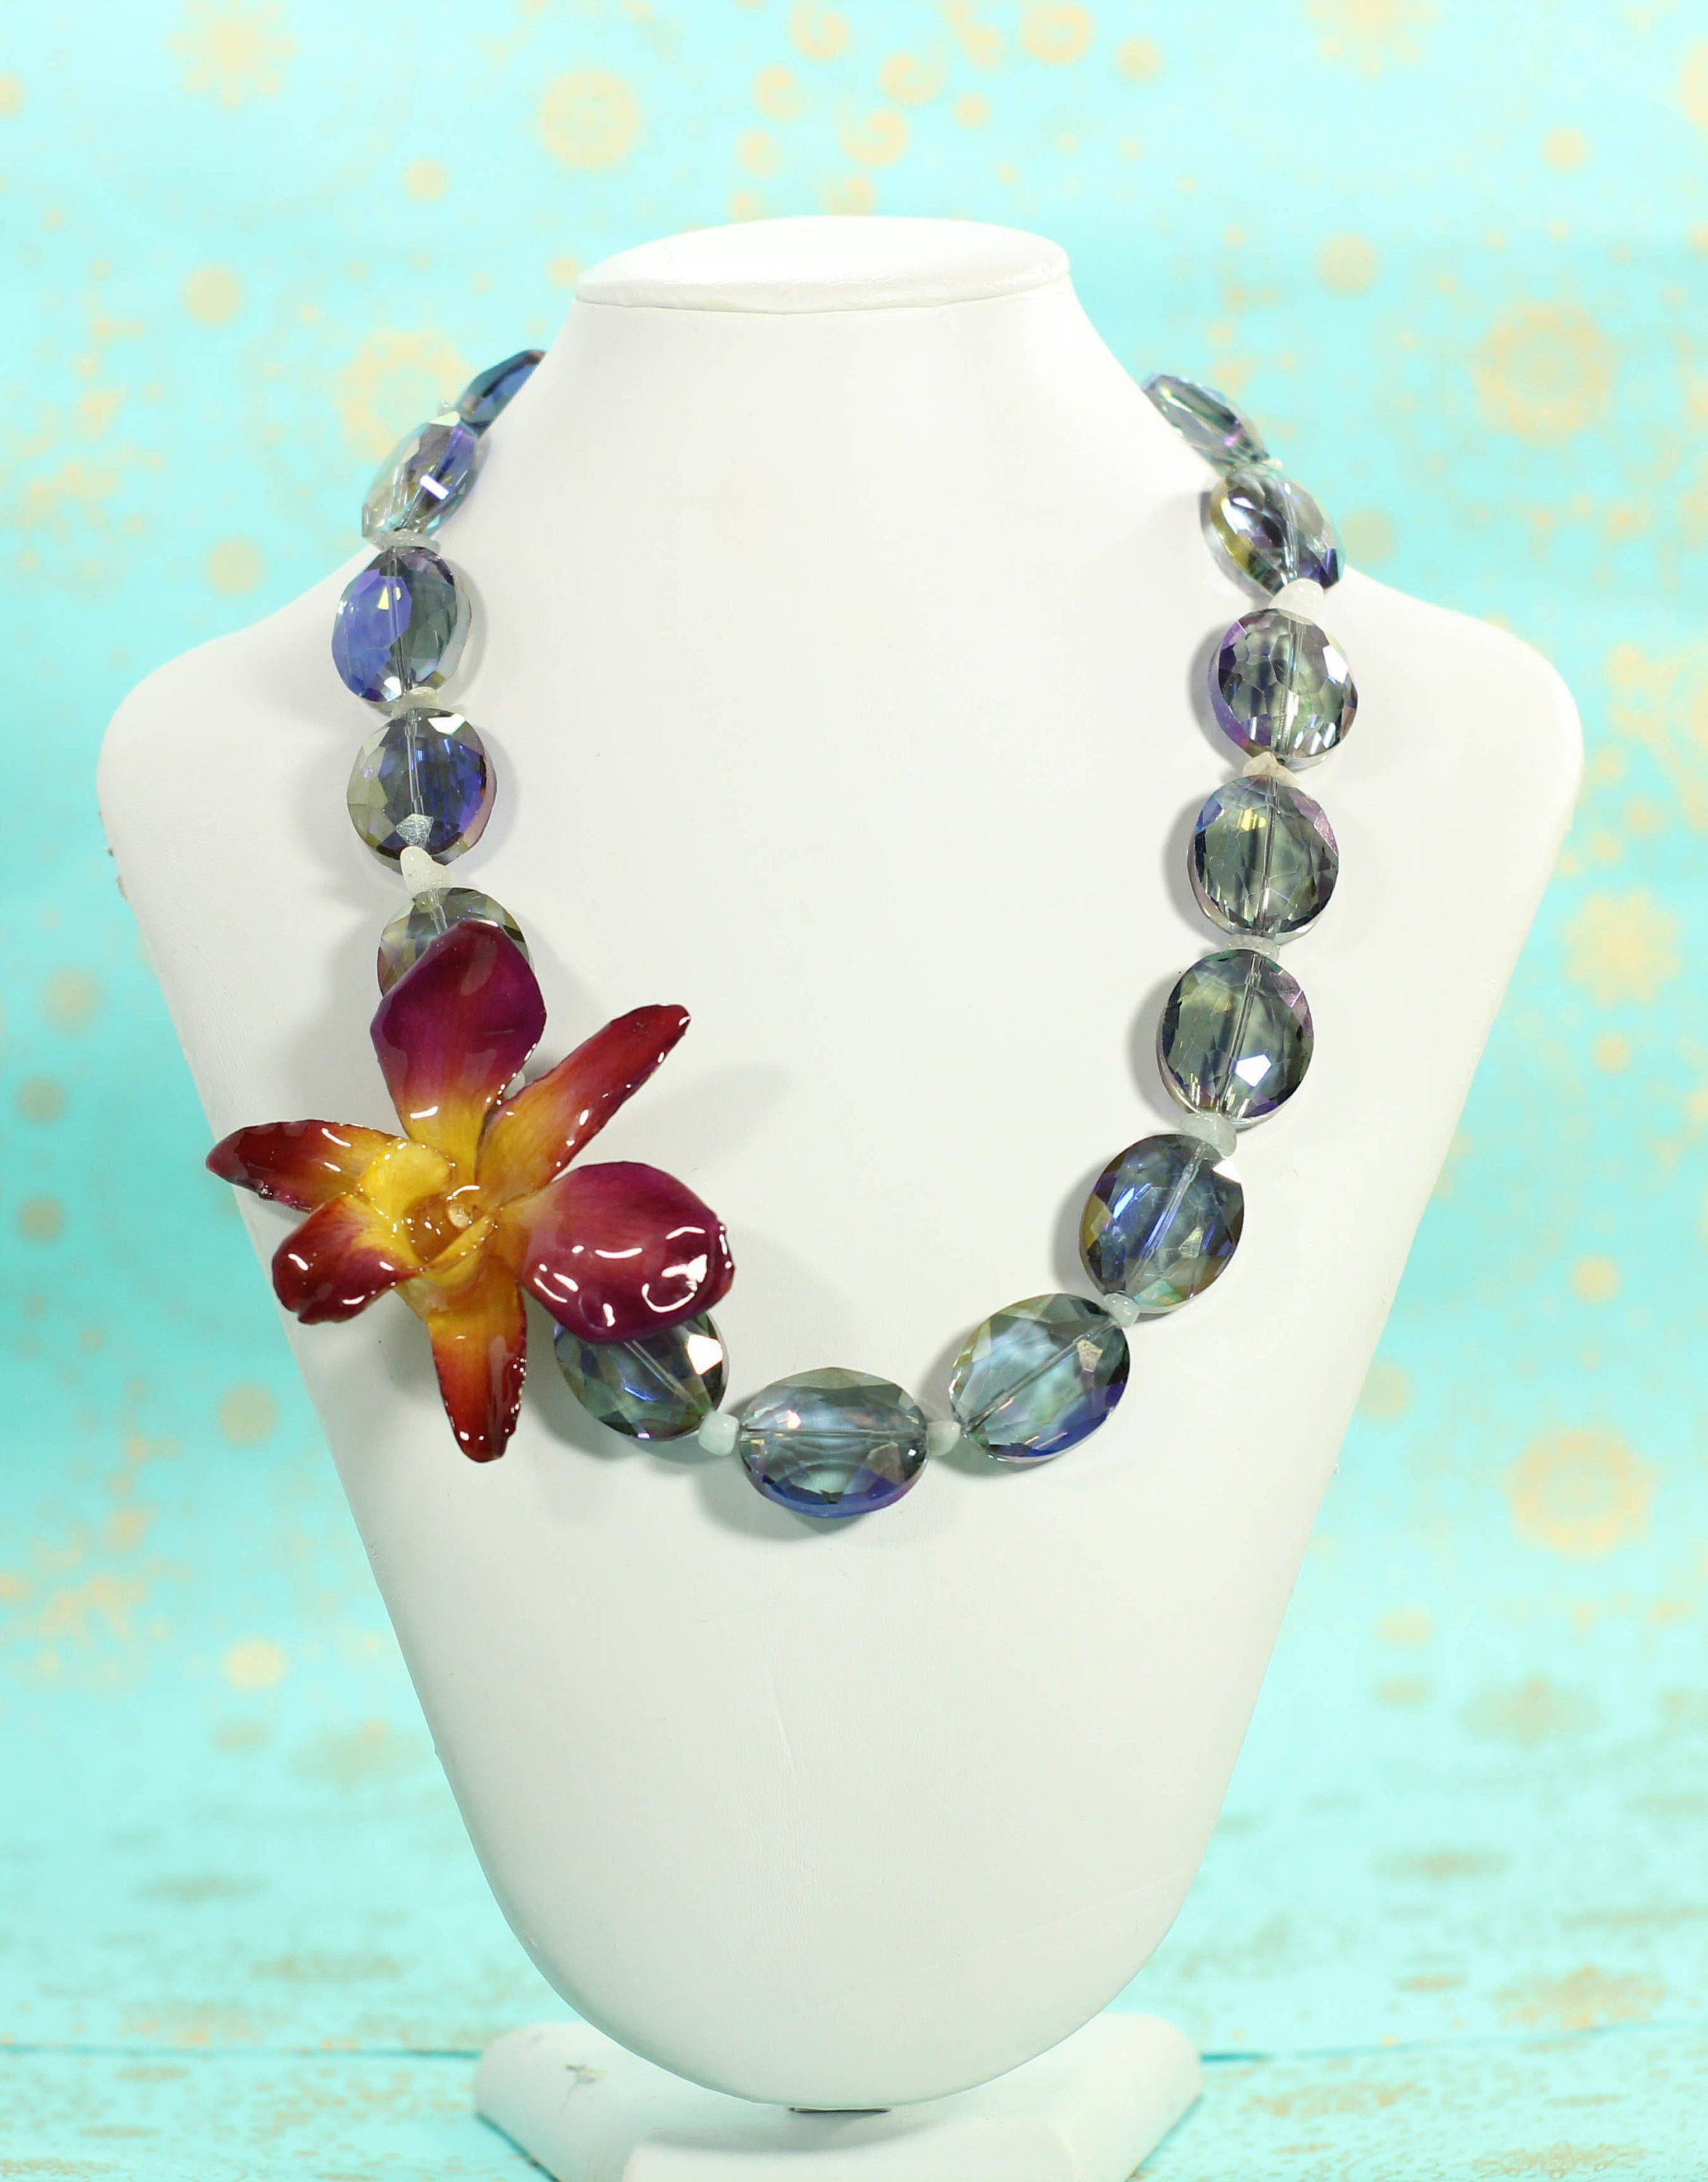 Orchid Flower Jewelry Real Orchid Necklace Handmade Gifts With Images Orchid Necklace Handmade Necklaces Flower Jewellery